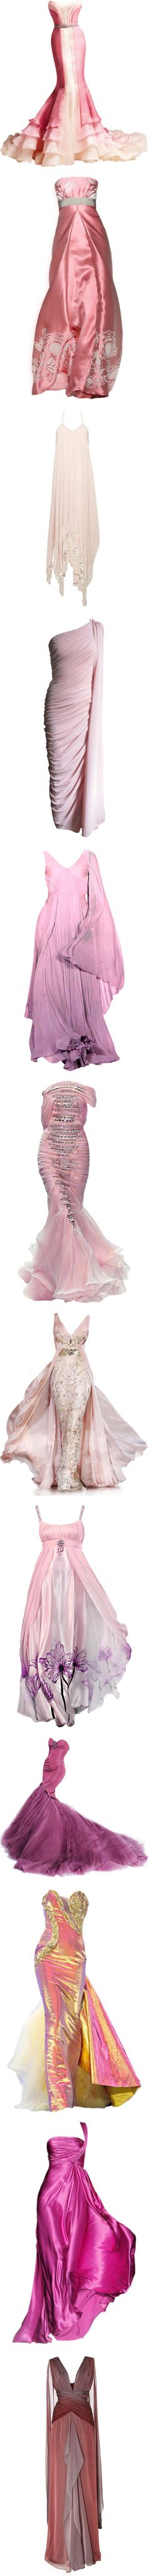 Pink and Purple Gowns by pastora-val on Polyvore featuring women's fashion, dresses, gowns, vestidos, long dresses, versace evening gowns, versace gowns, versace evening dresses, versace dress and satinee